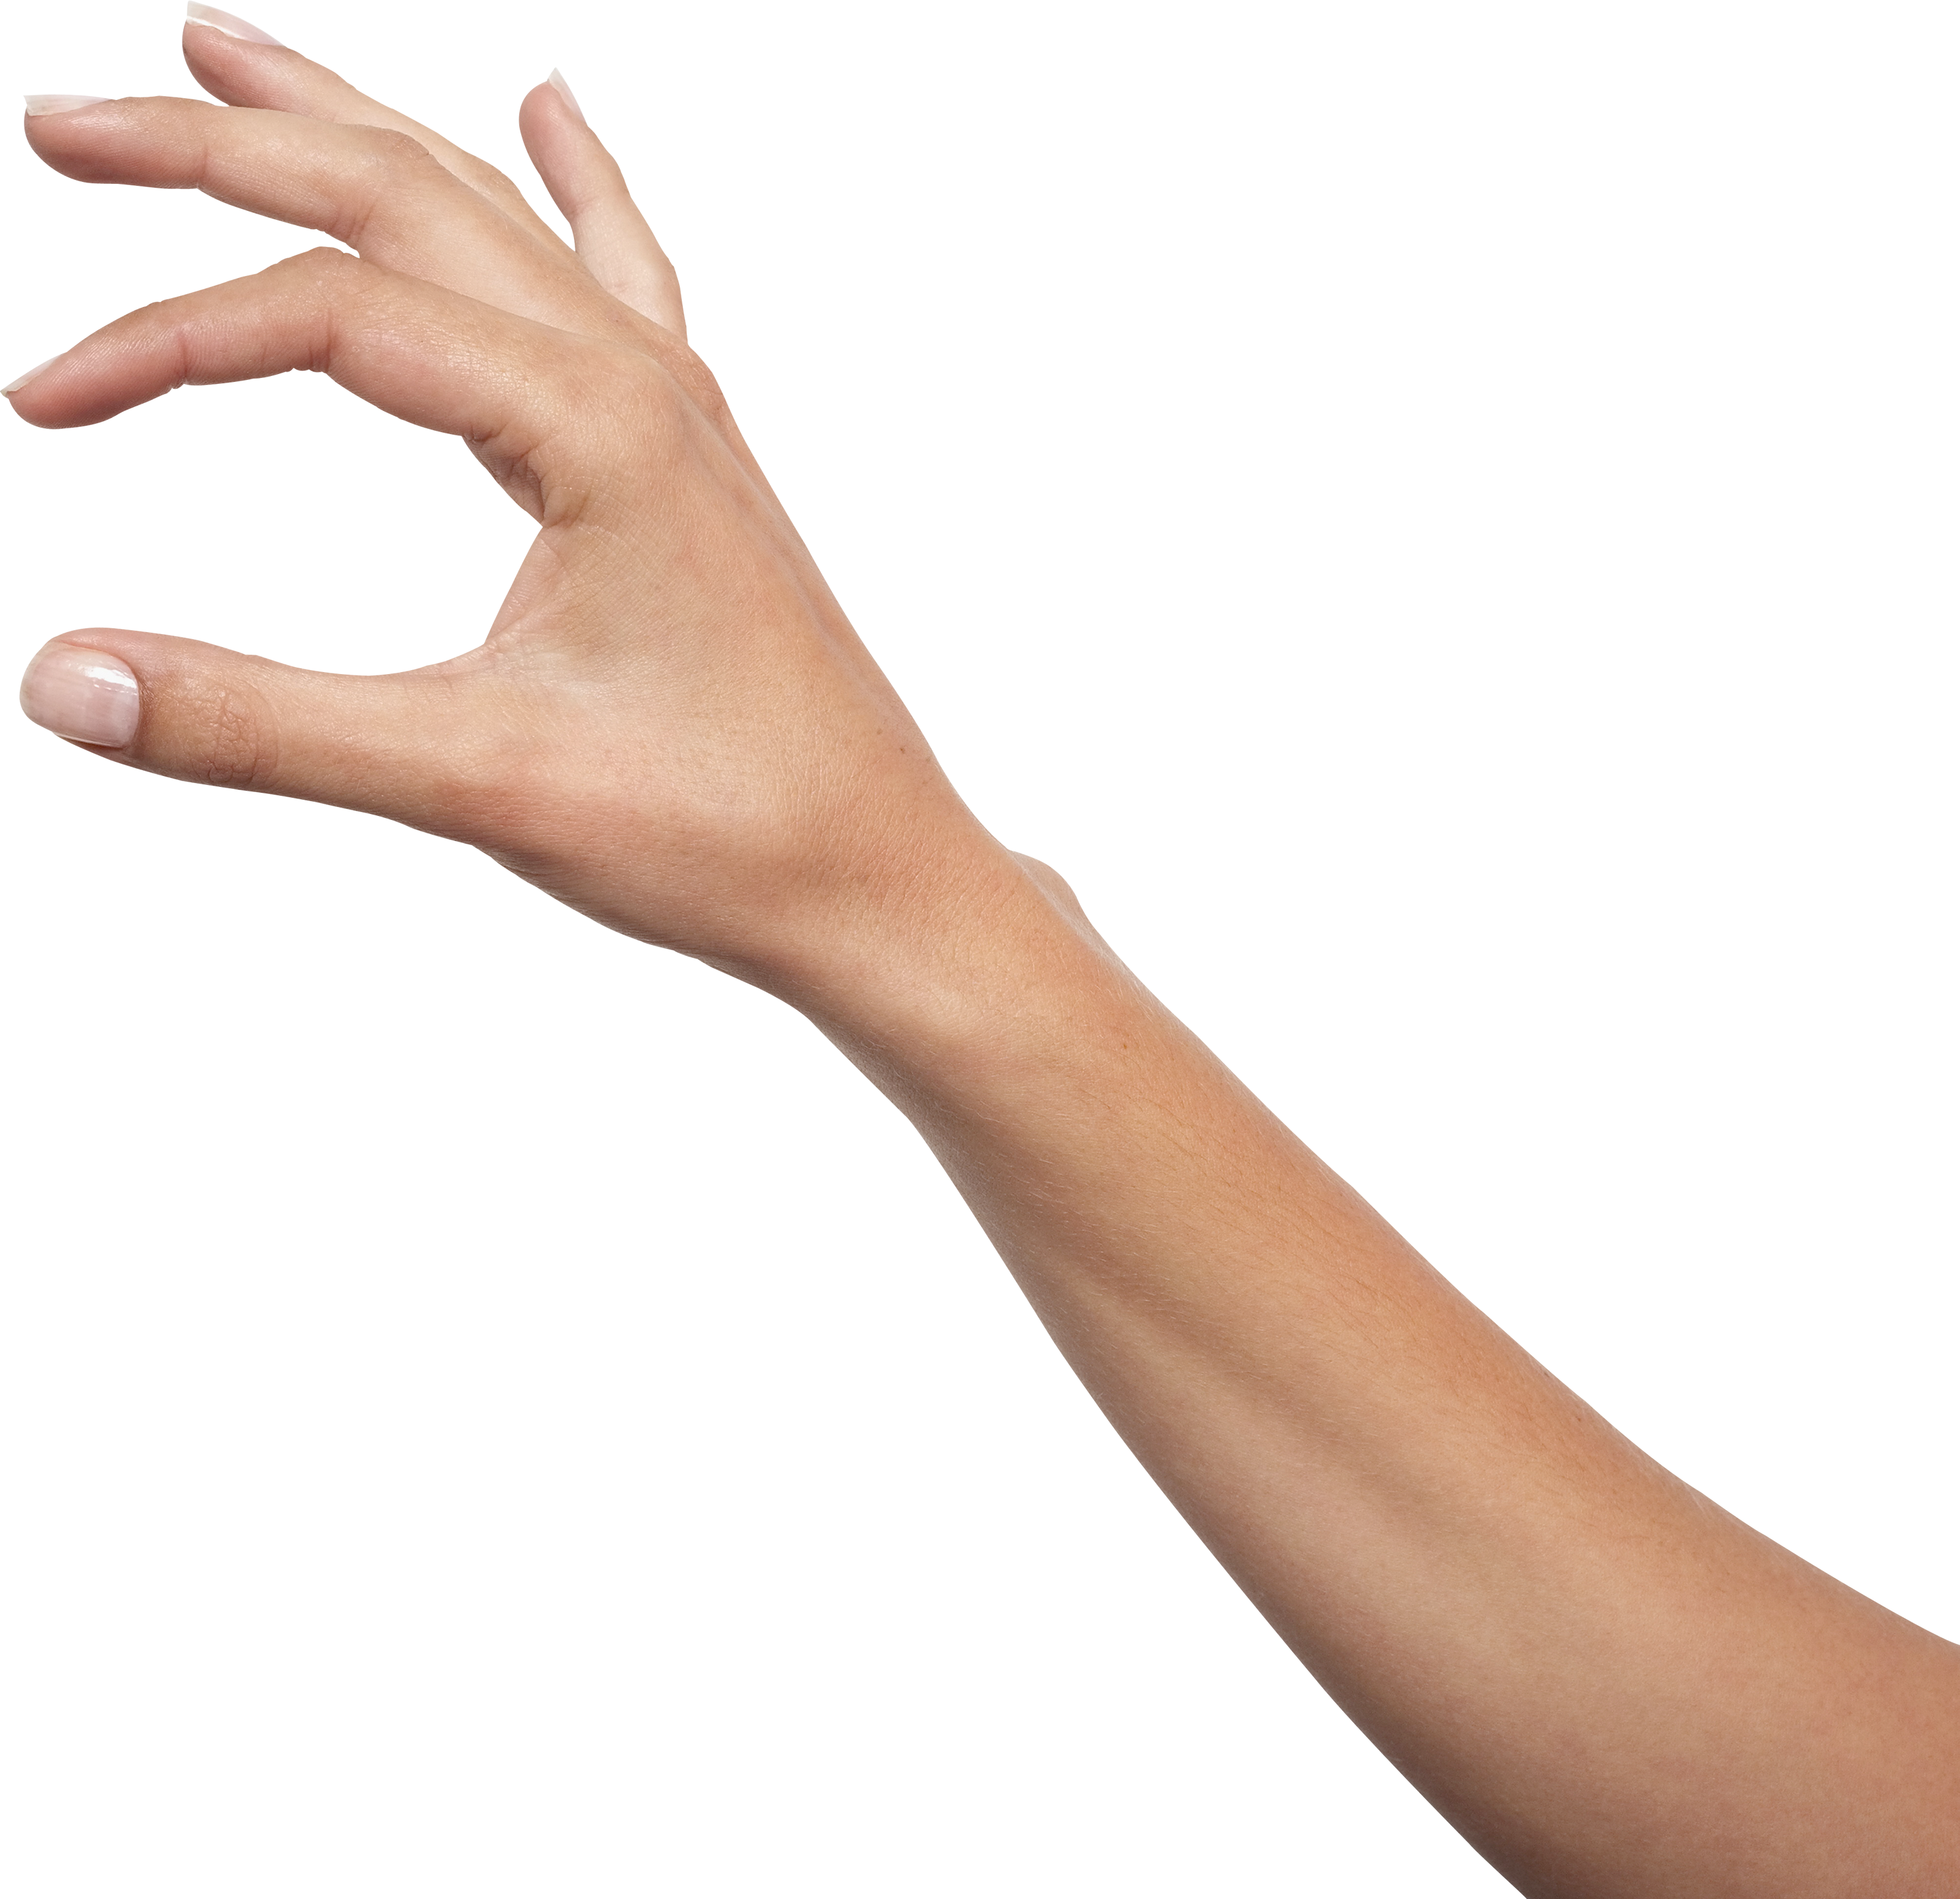 Hand and arm png. Hands image purepng free